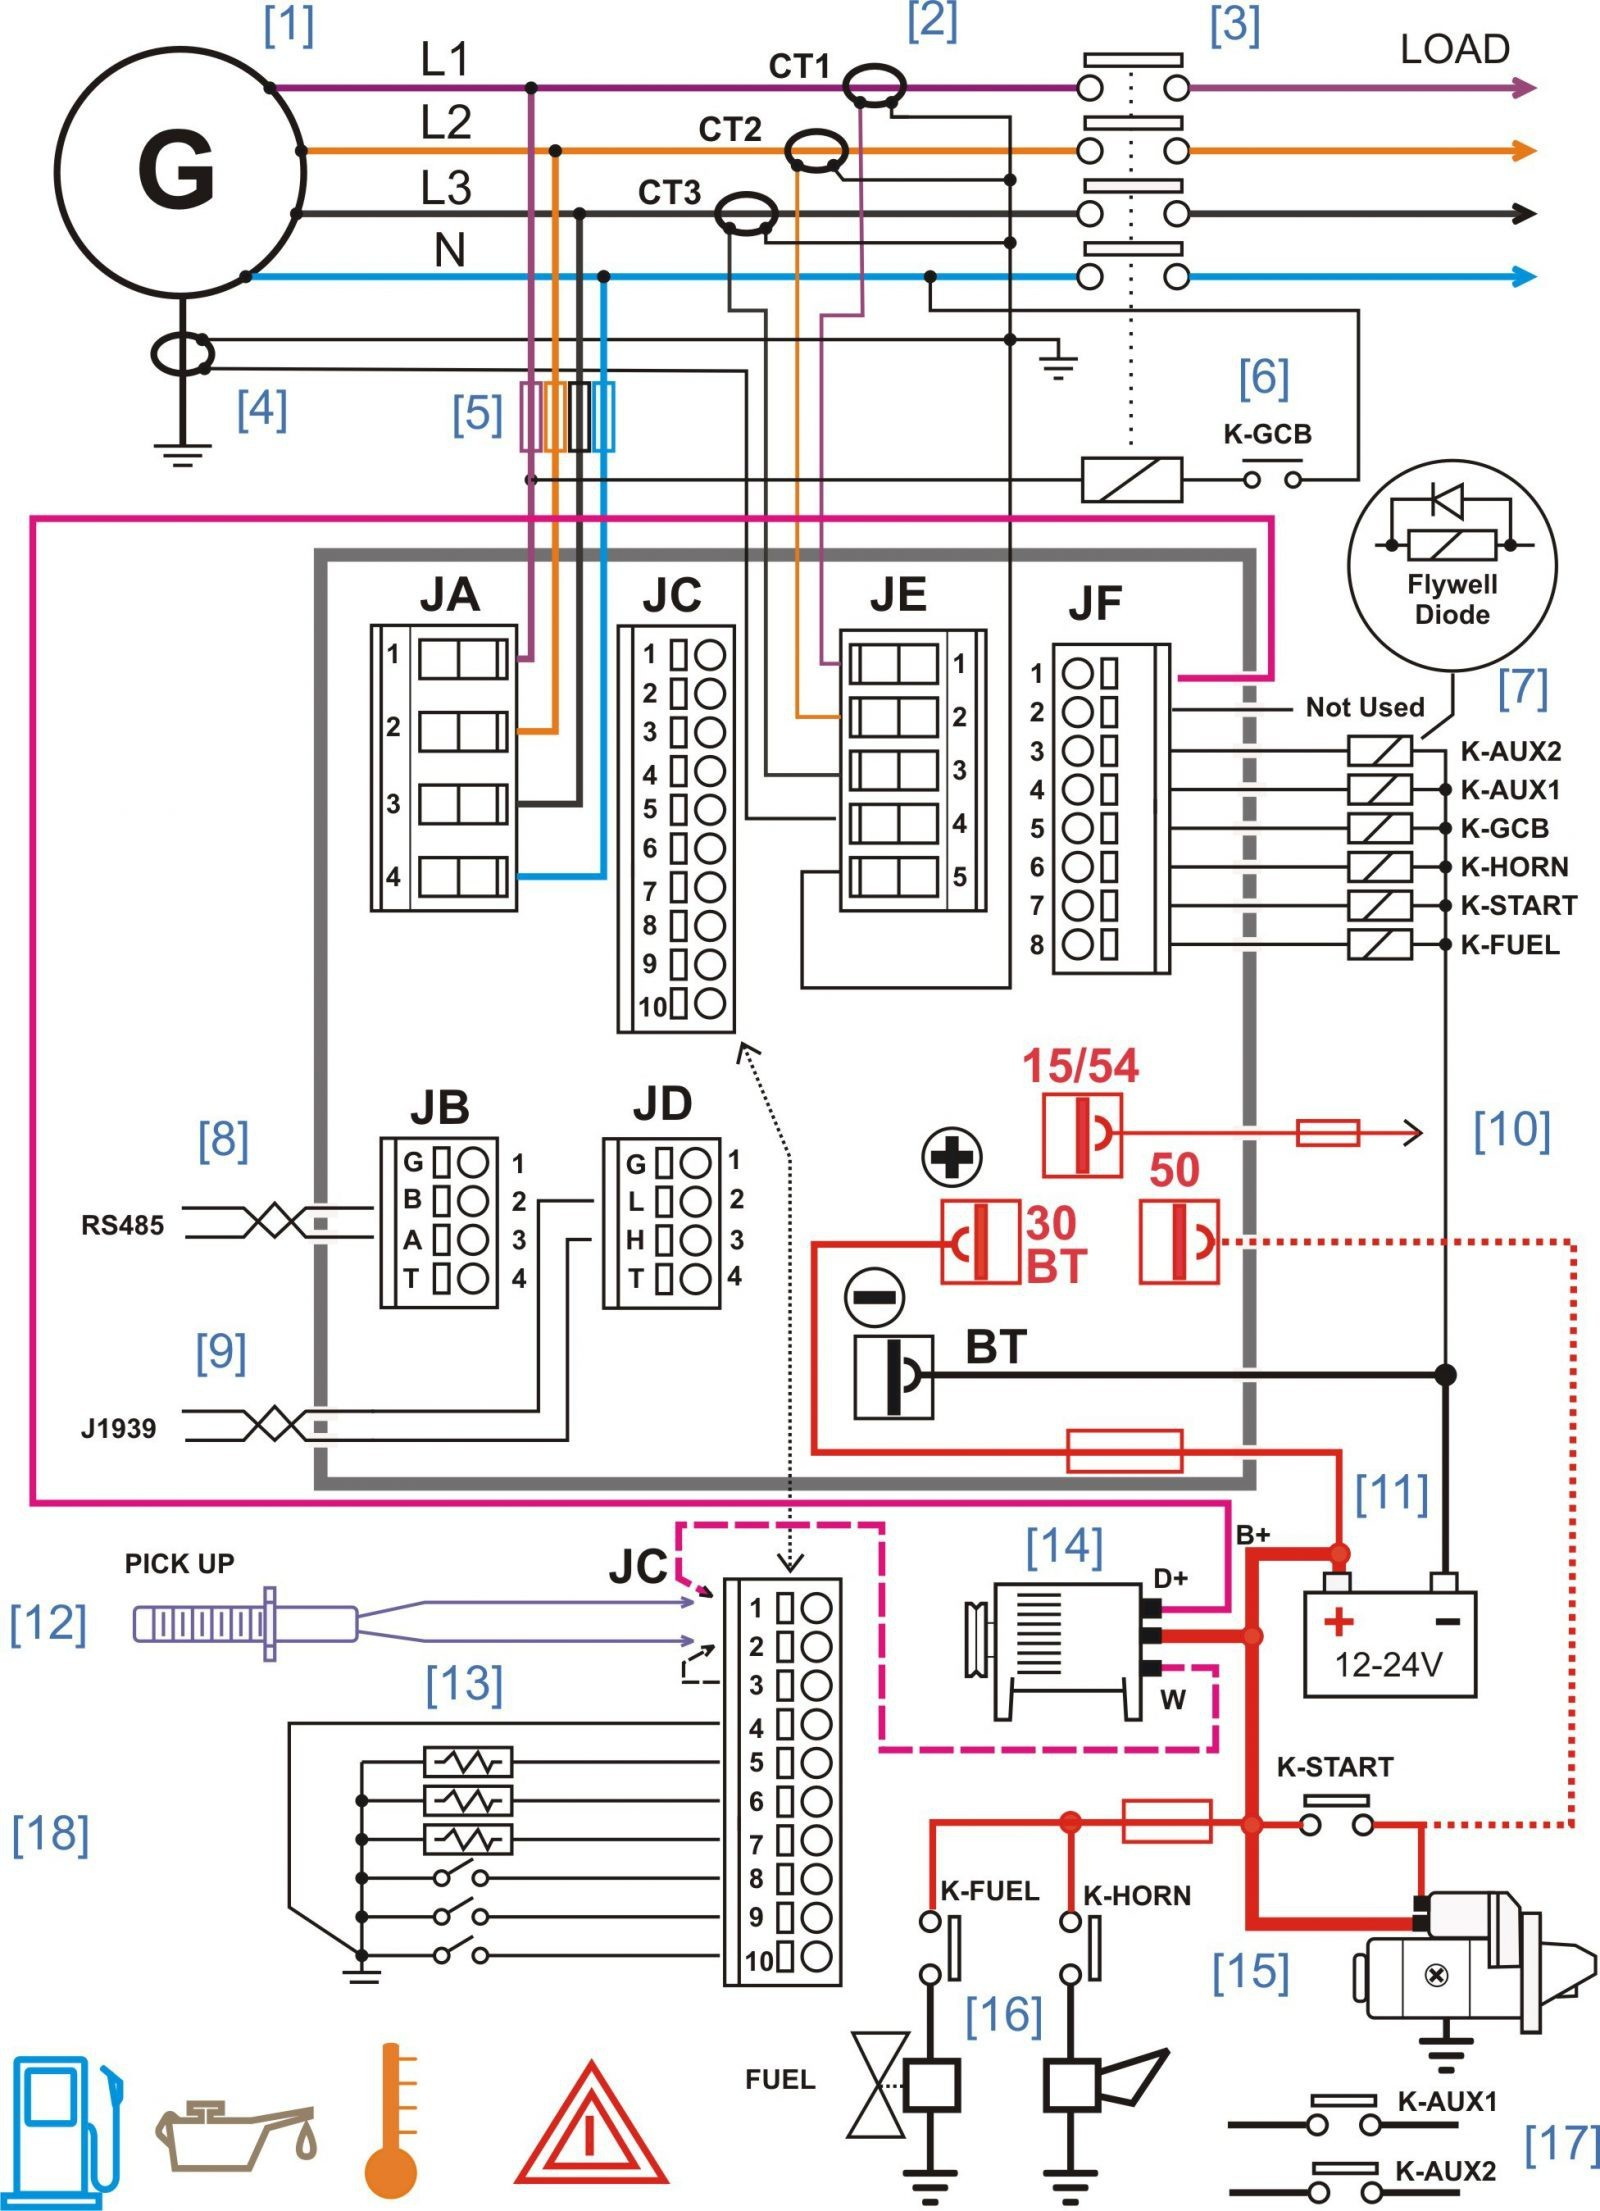 Car Radio Wiring Diagram Kenwood Stereo Kdc 210u Within In Delphi Delco Part Number And